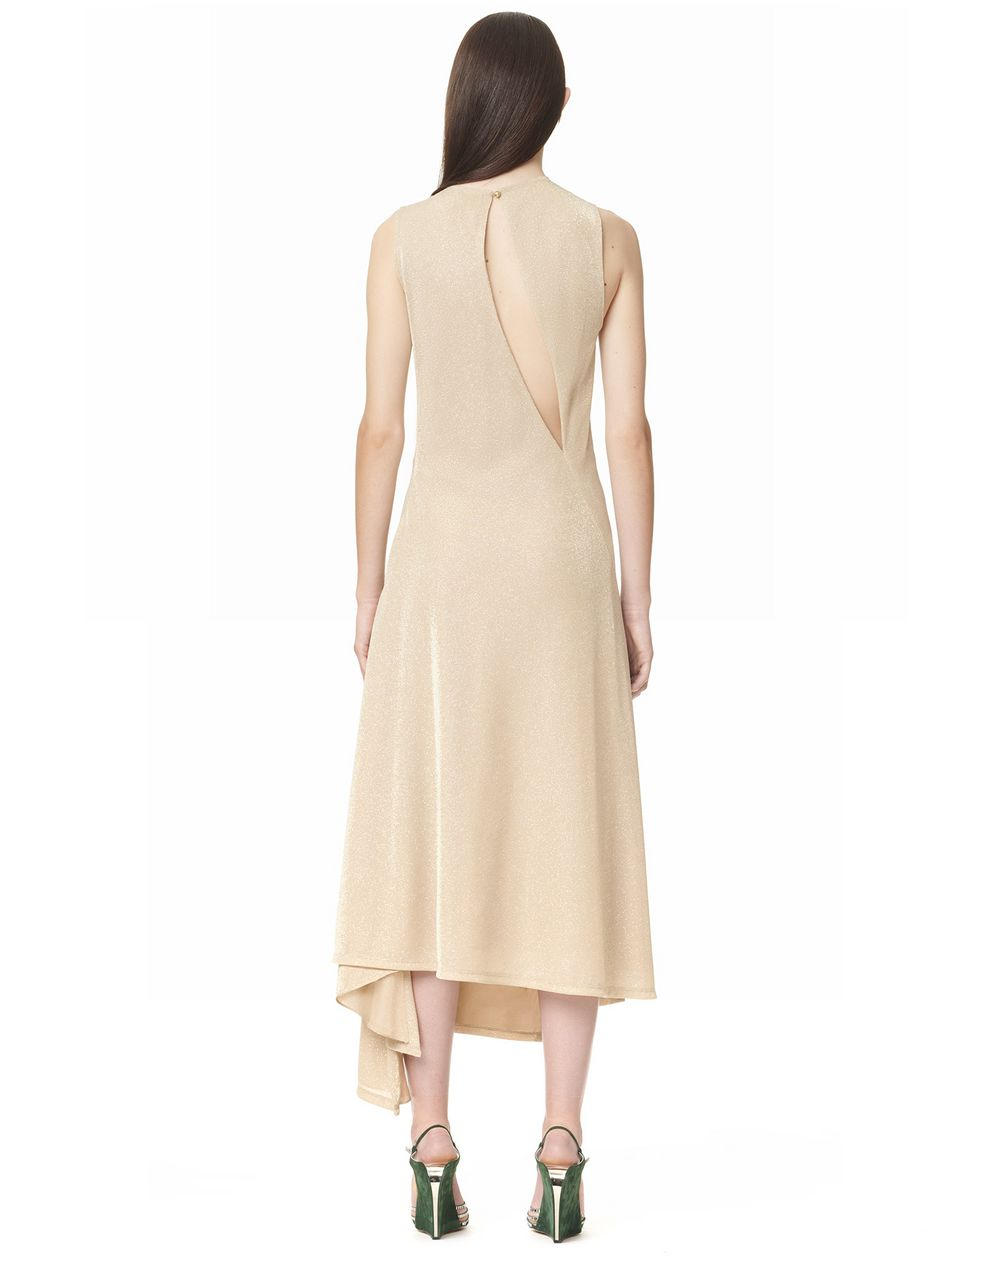 SLEEVELESS DRAPED DRESS - Lanvin